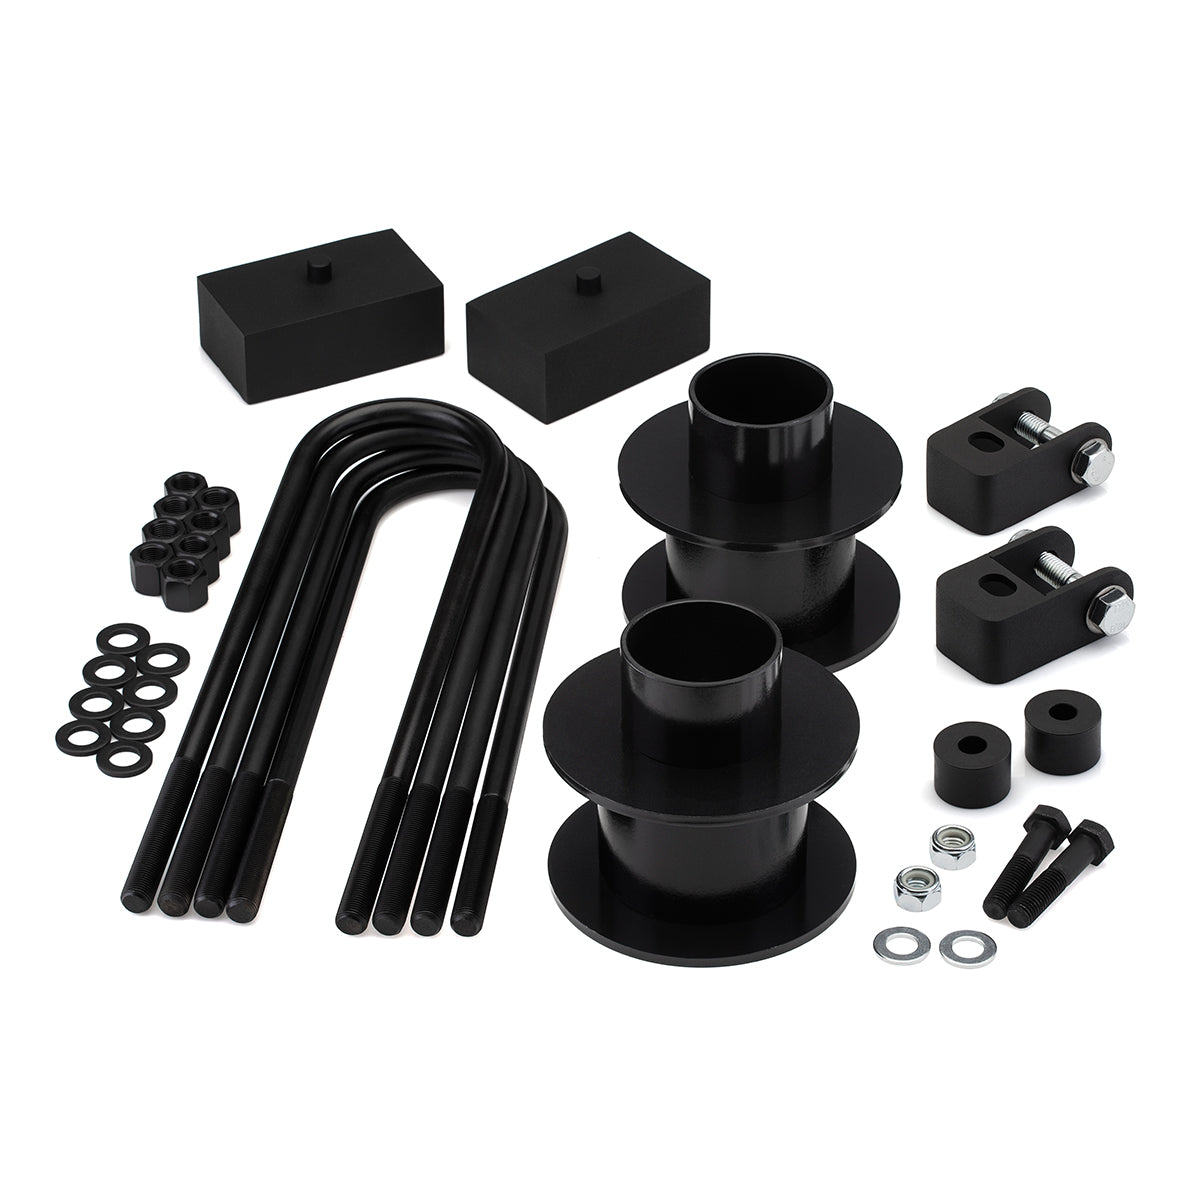 2005-2019 Ford F-350 Full Lift Kit with Bump Stop Drop and Shock Extenders